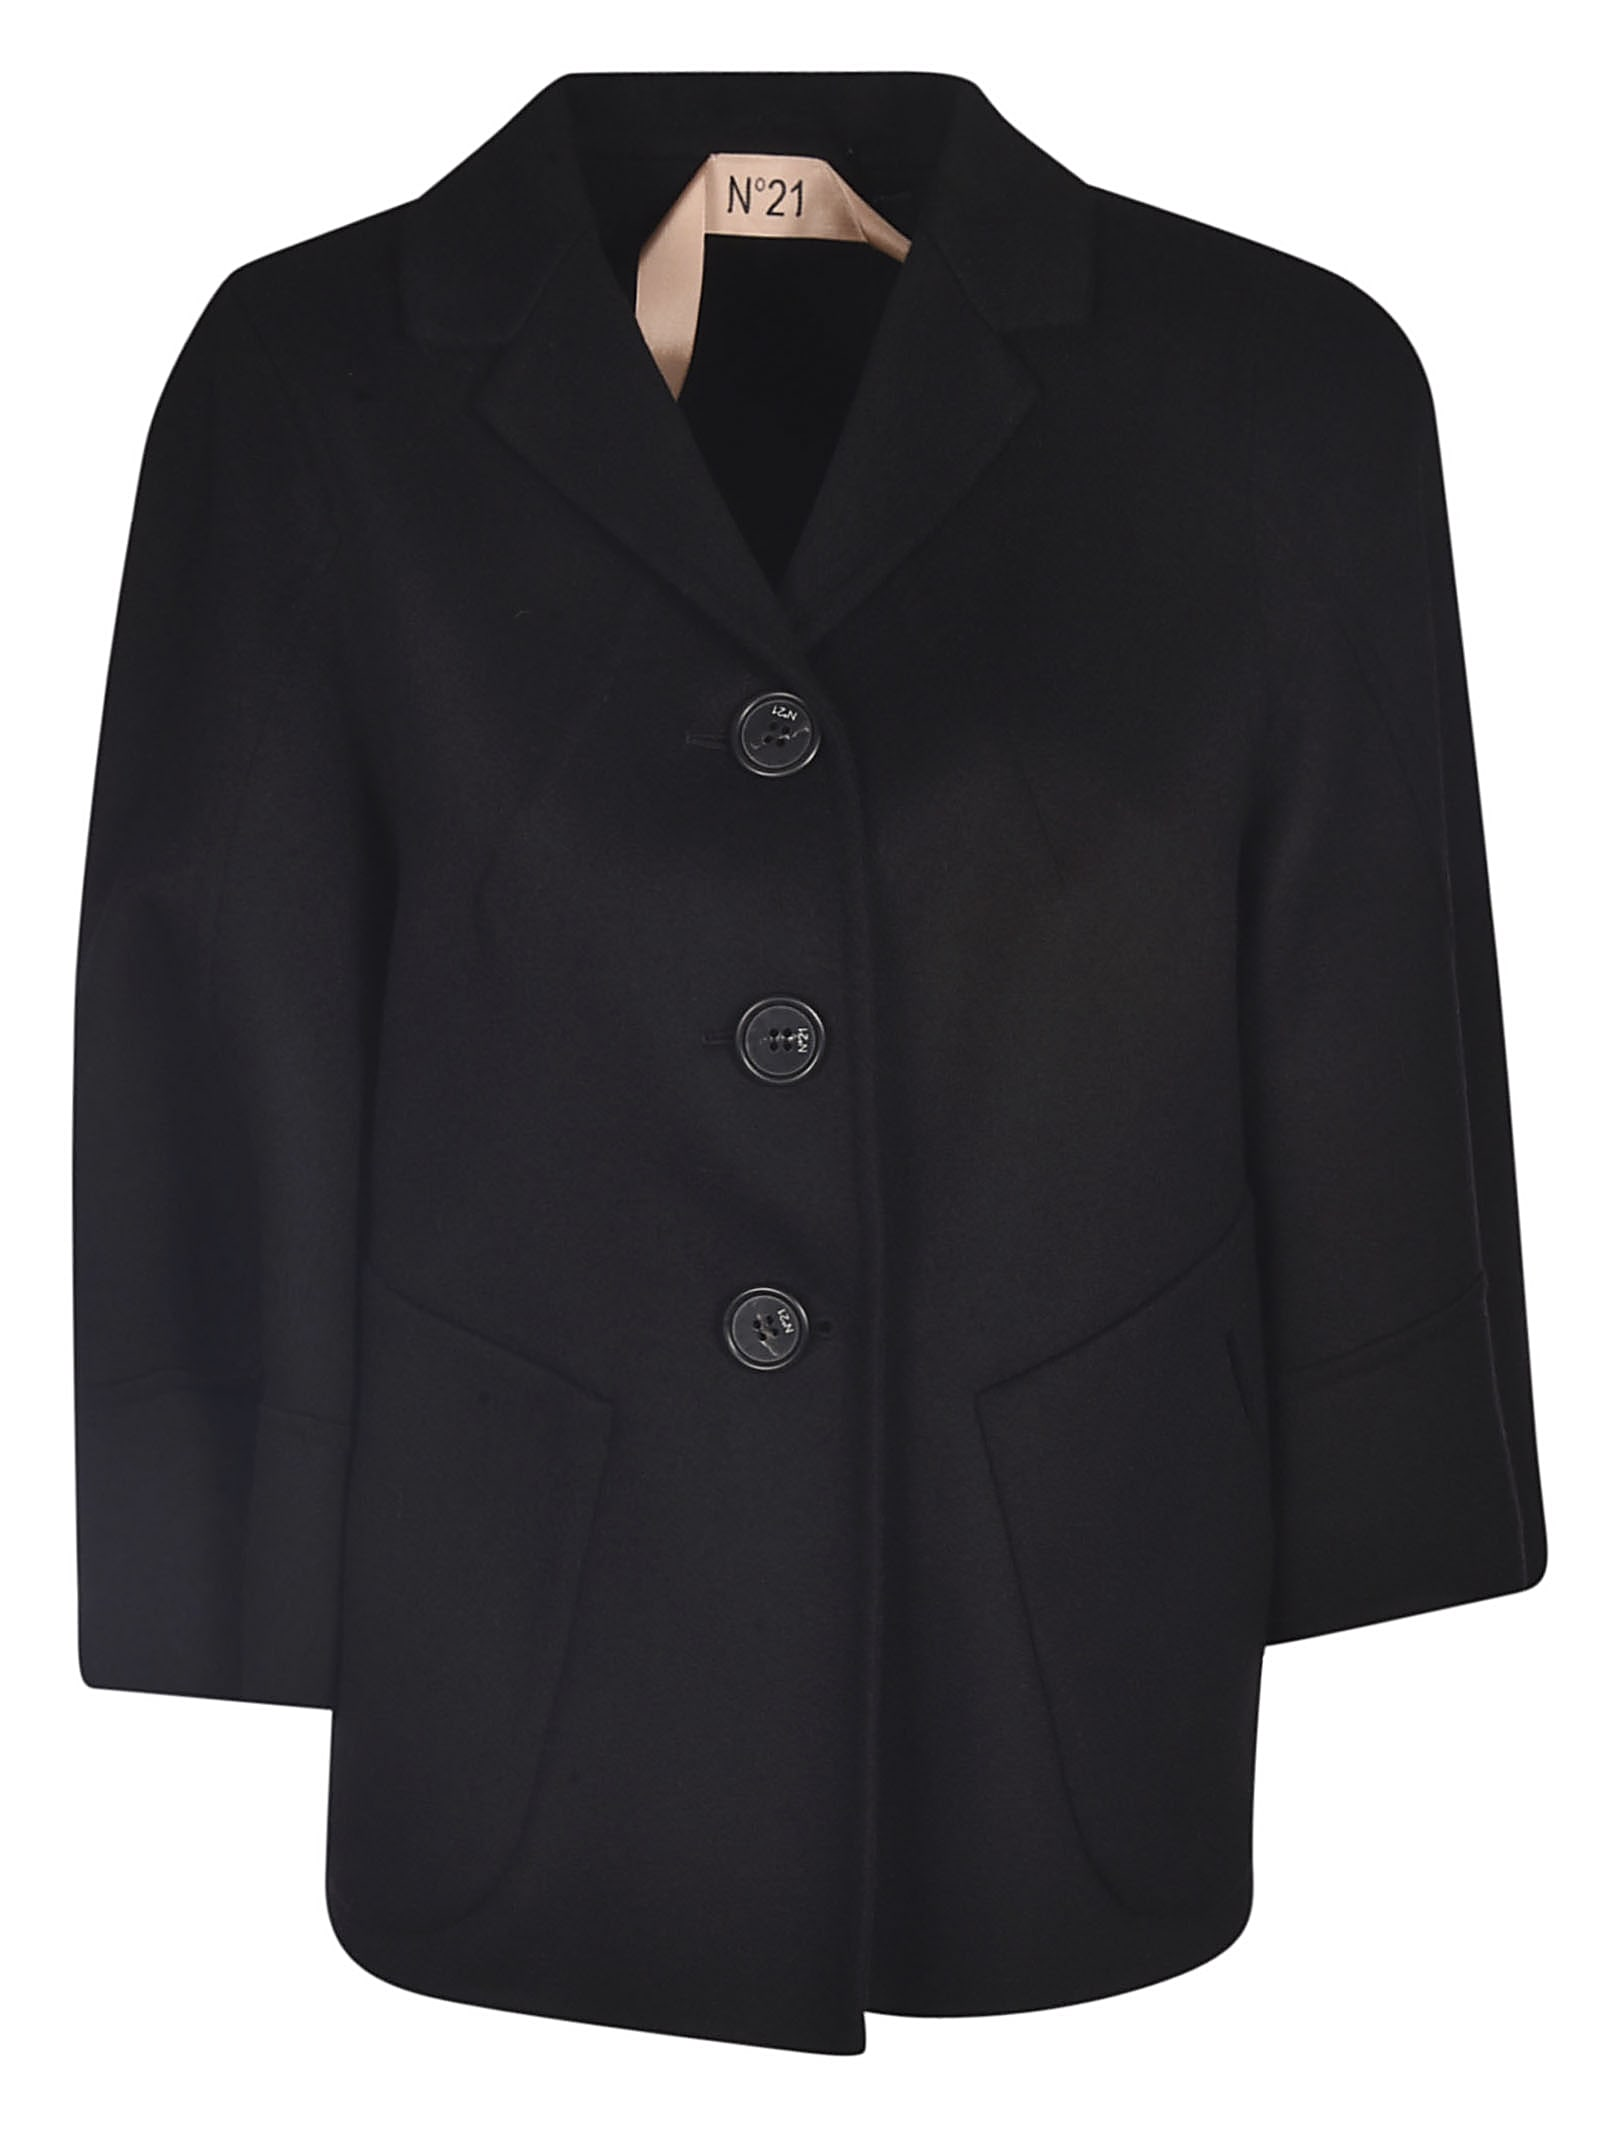 N.21 Buttoned Jacket